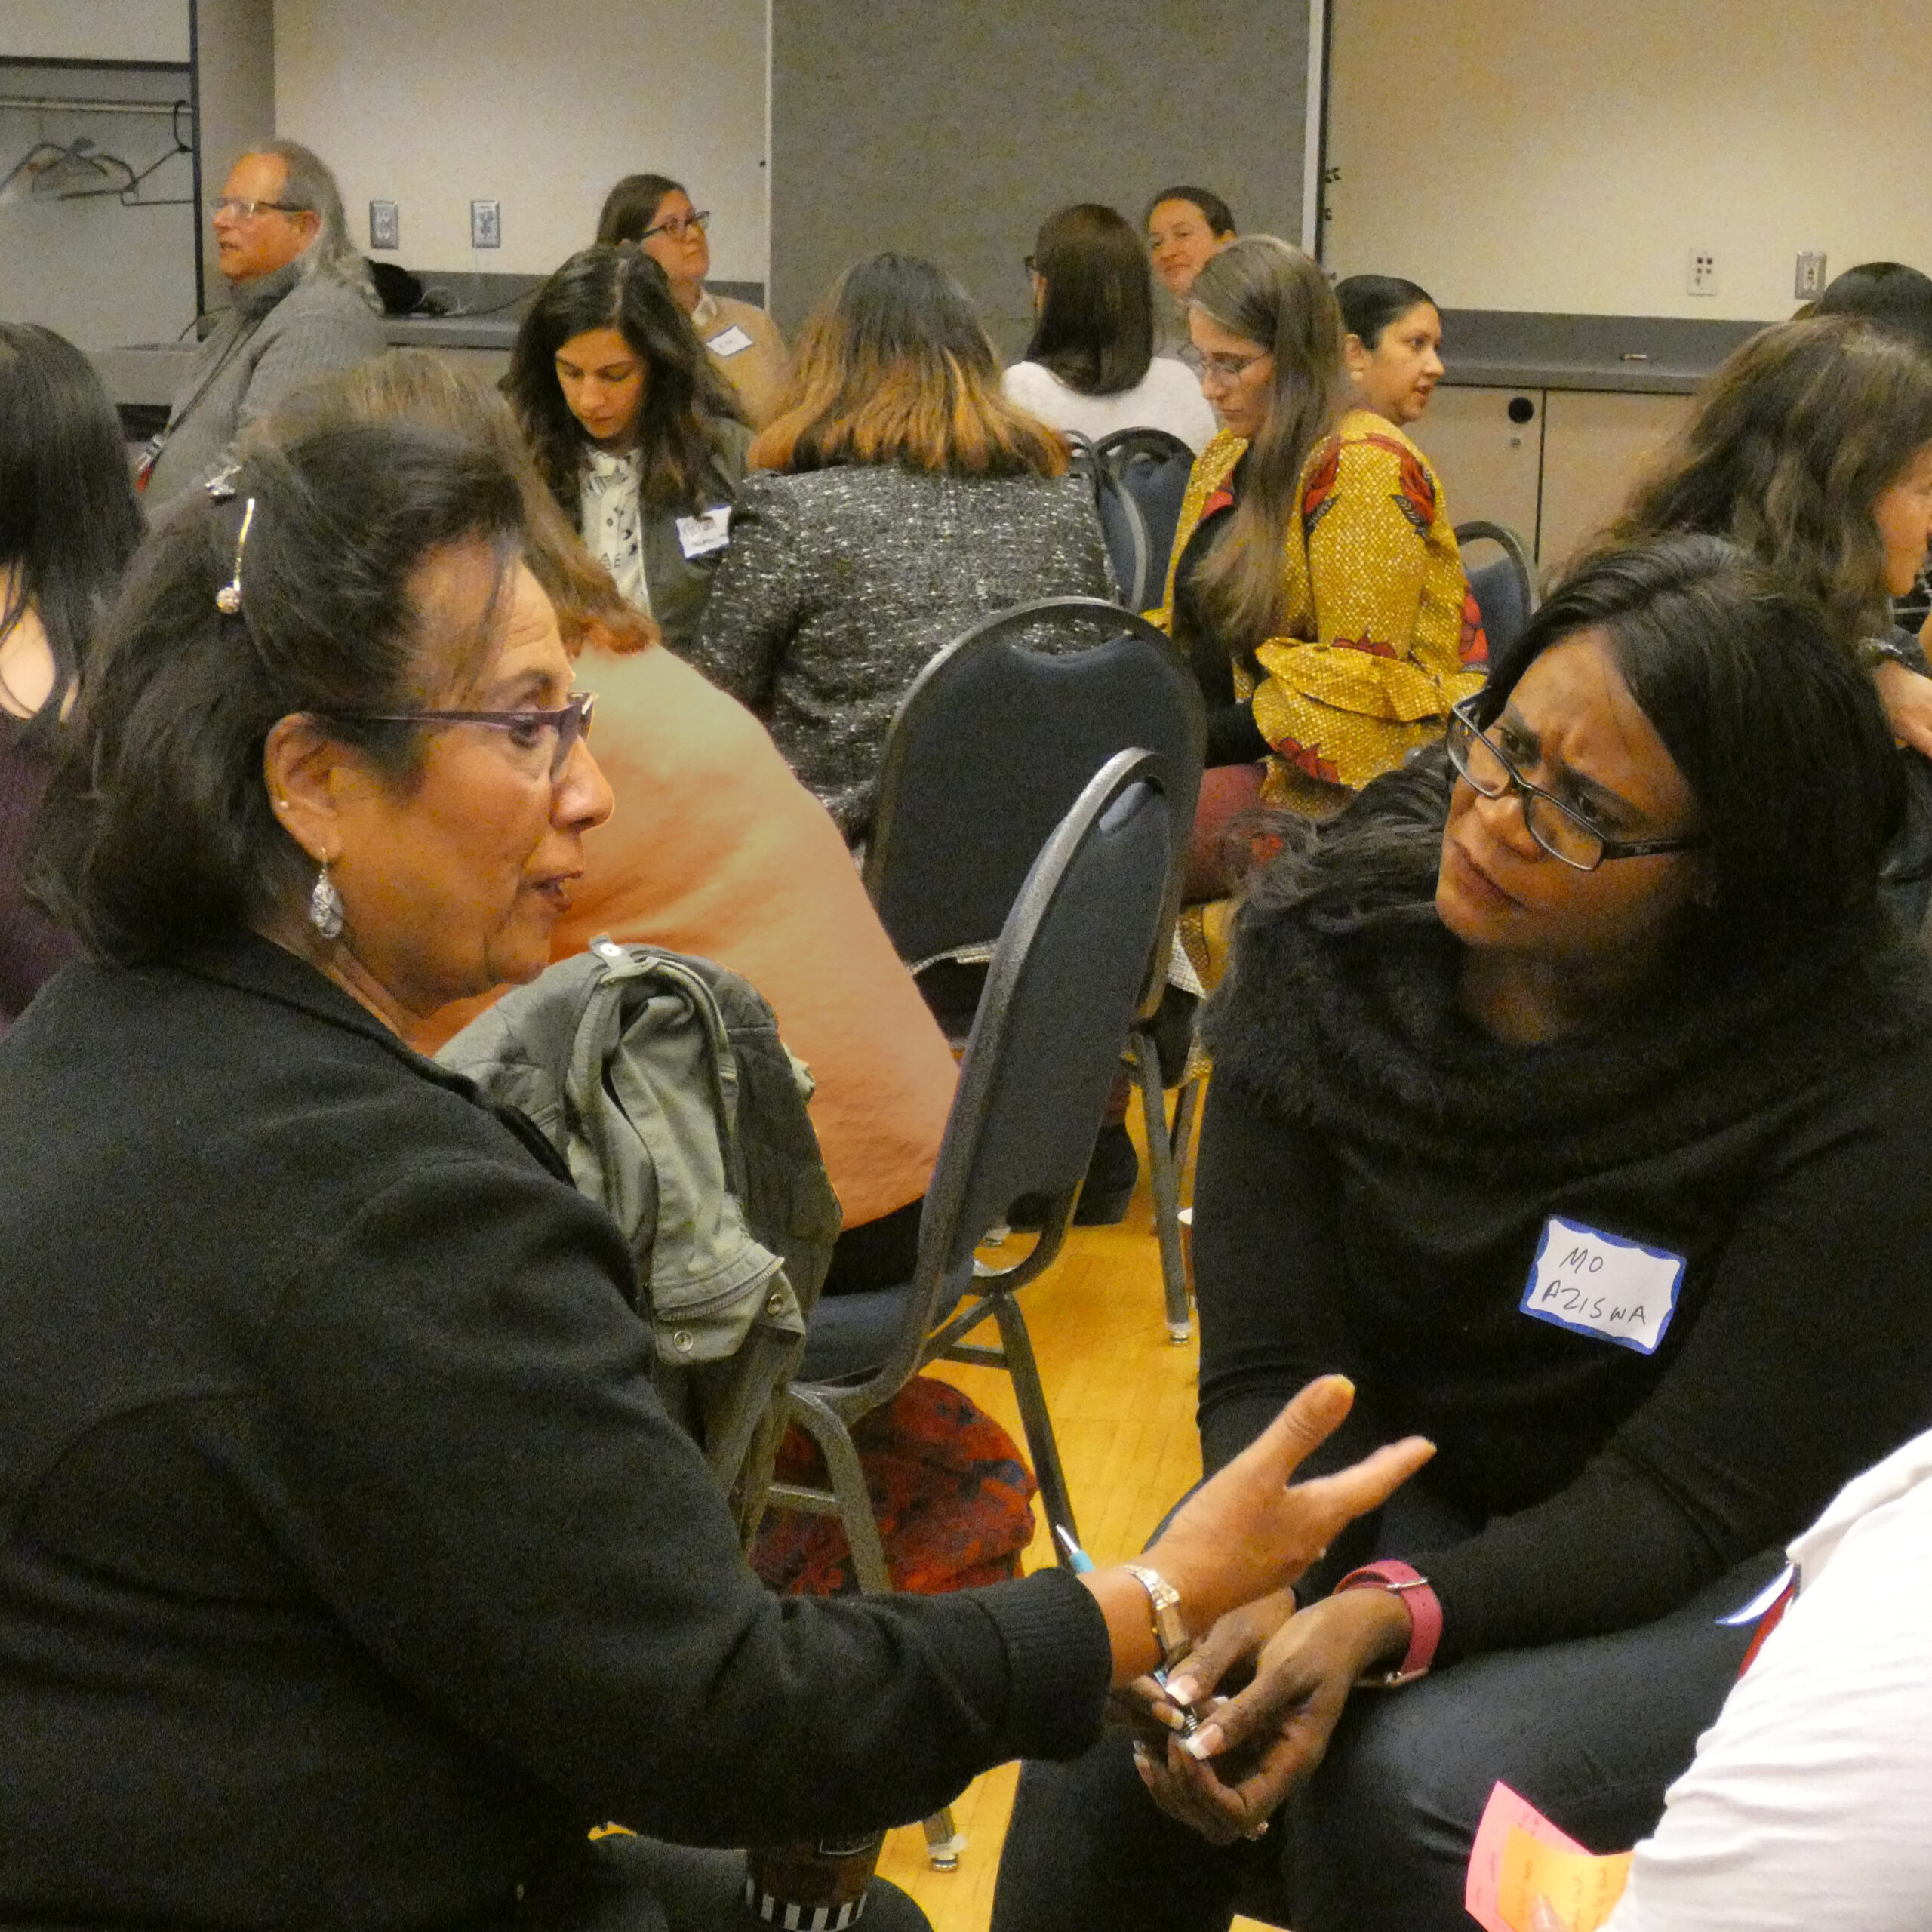 two people focusing on their conversation in a crowded room